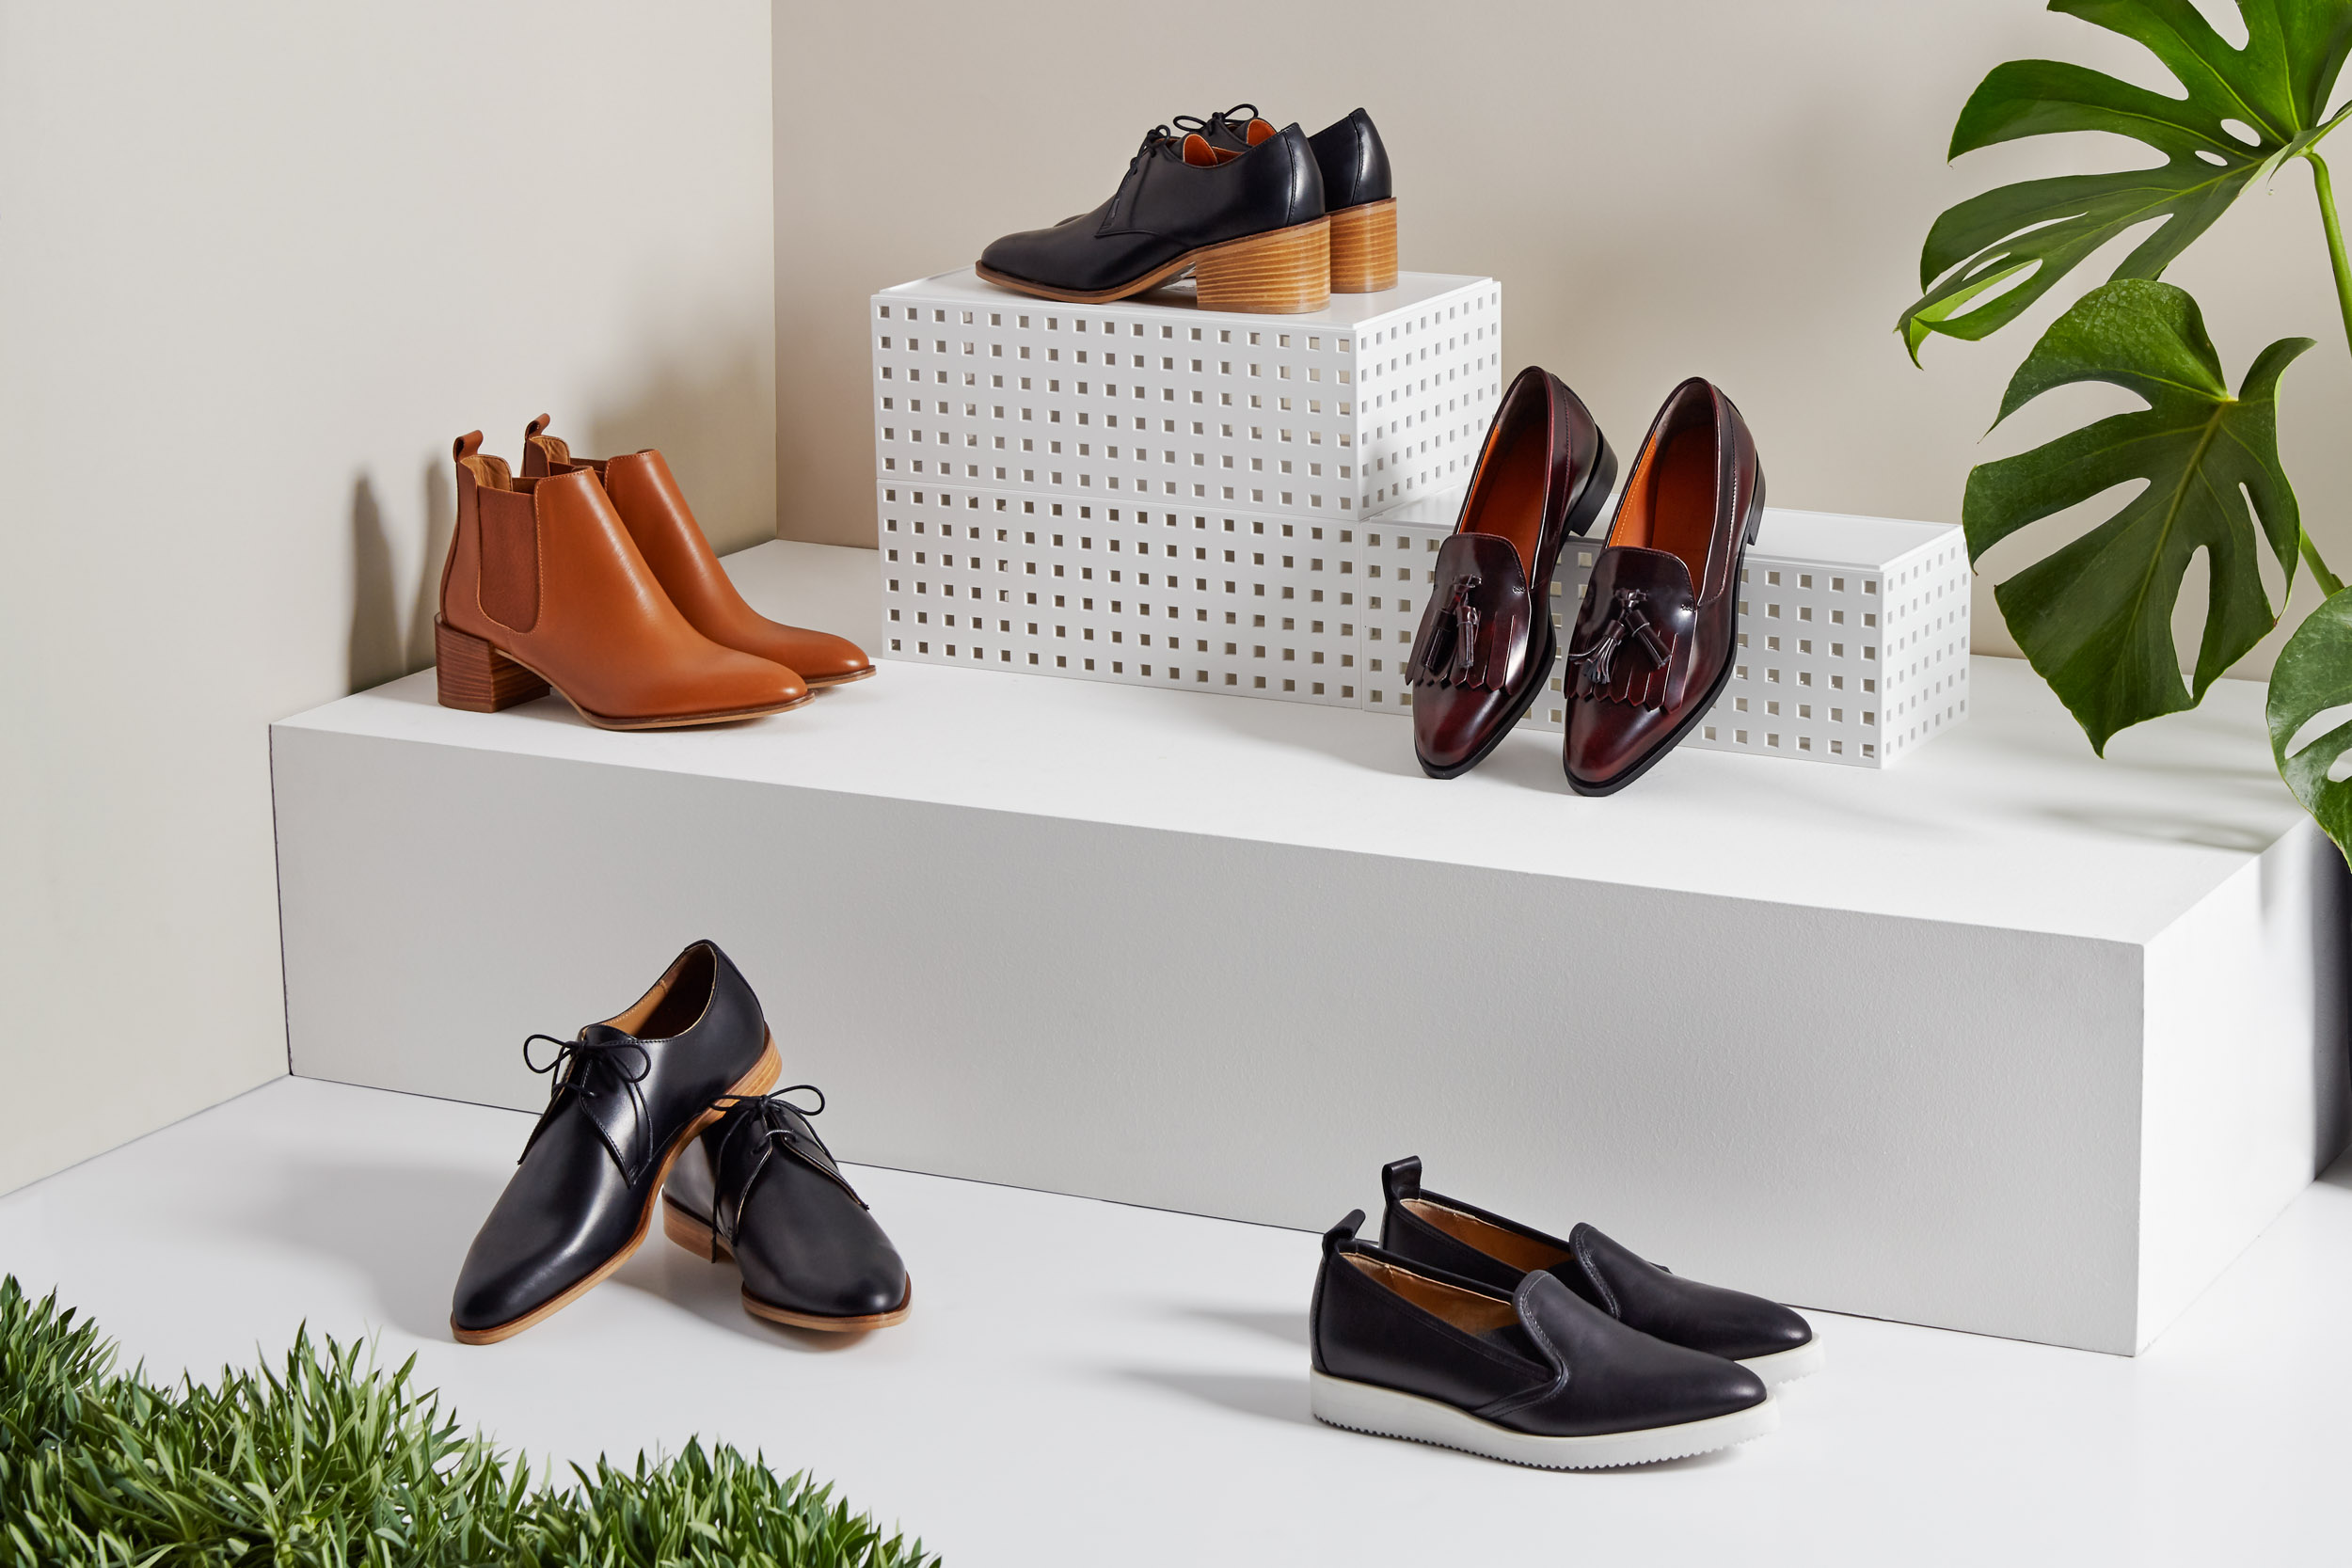 2018.10_024_2016.08.23_EVERLANE_SHOEPARK_2A